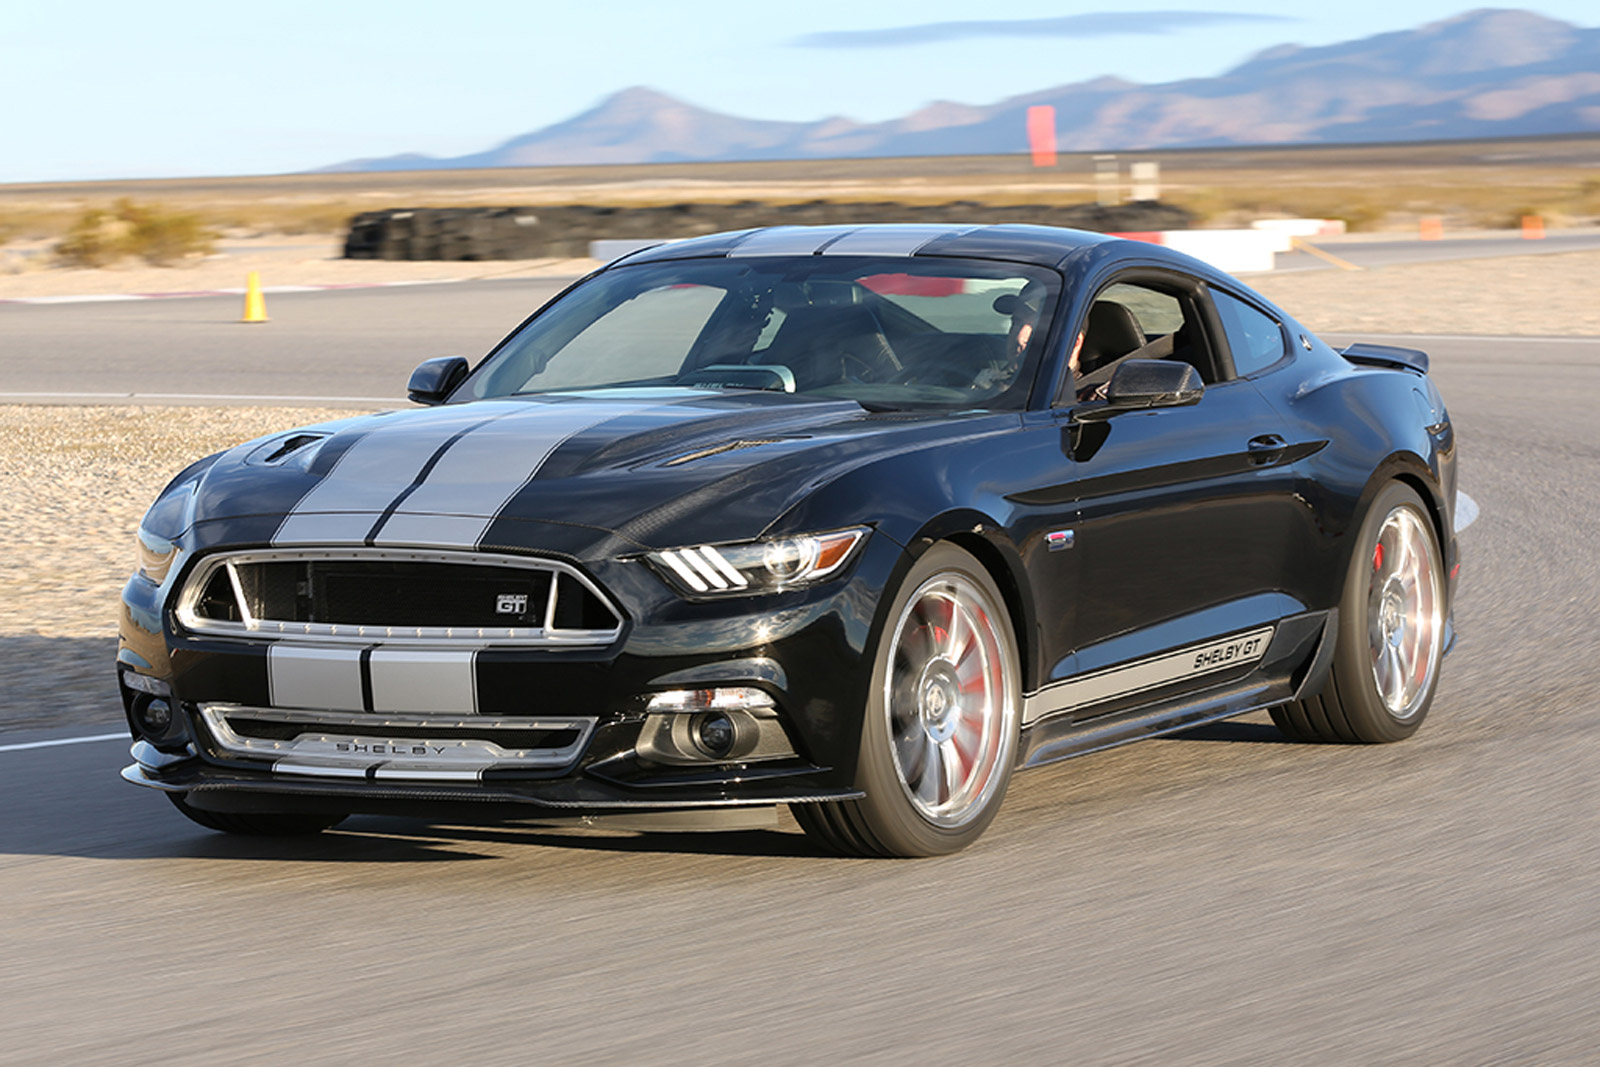 2015 ford shelby gt debuts with 625 horsepower video. Black Bedroom Furniture Sets. Home Design Ideas